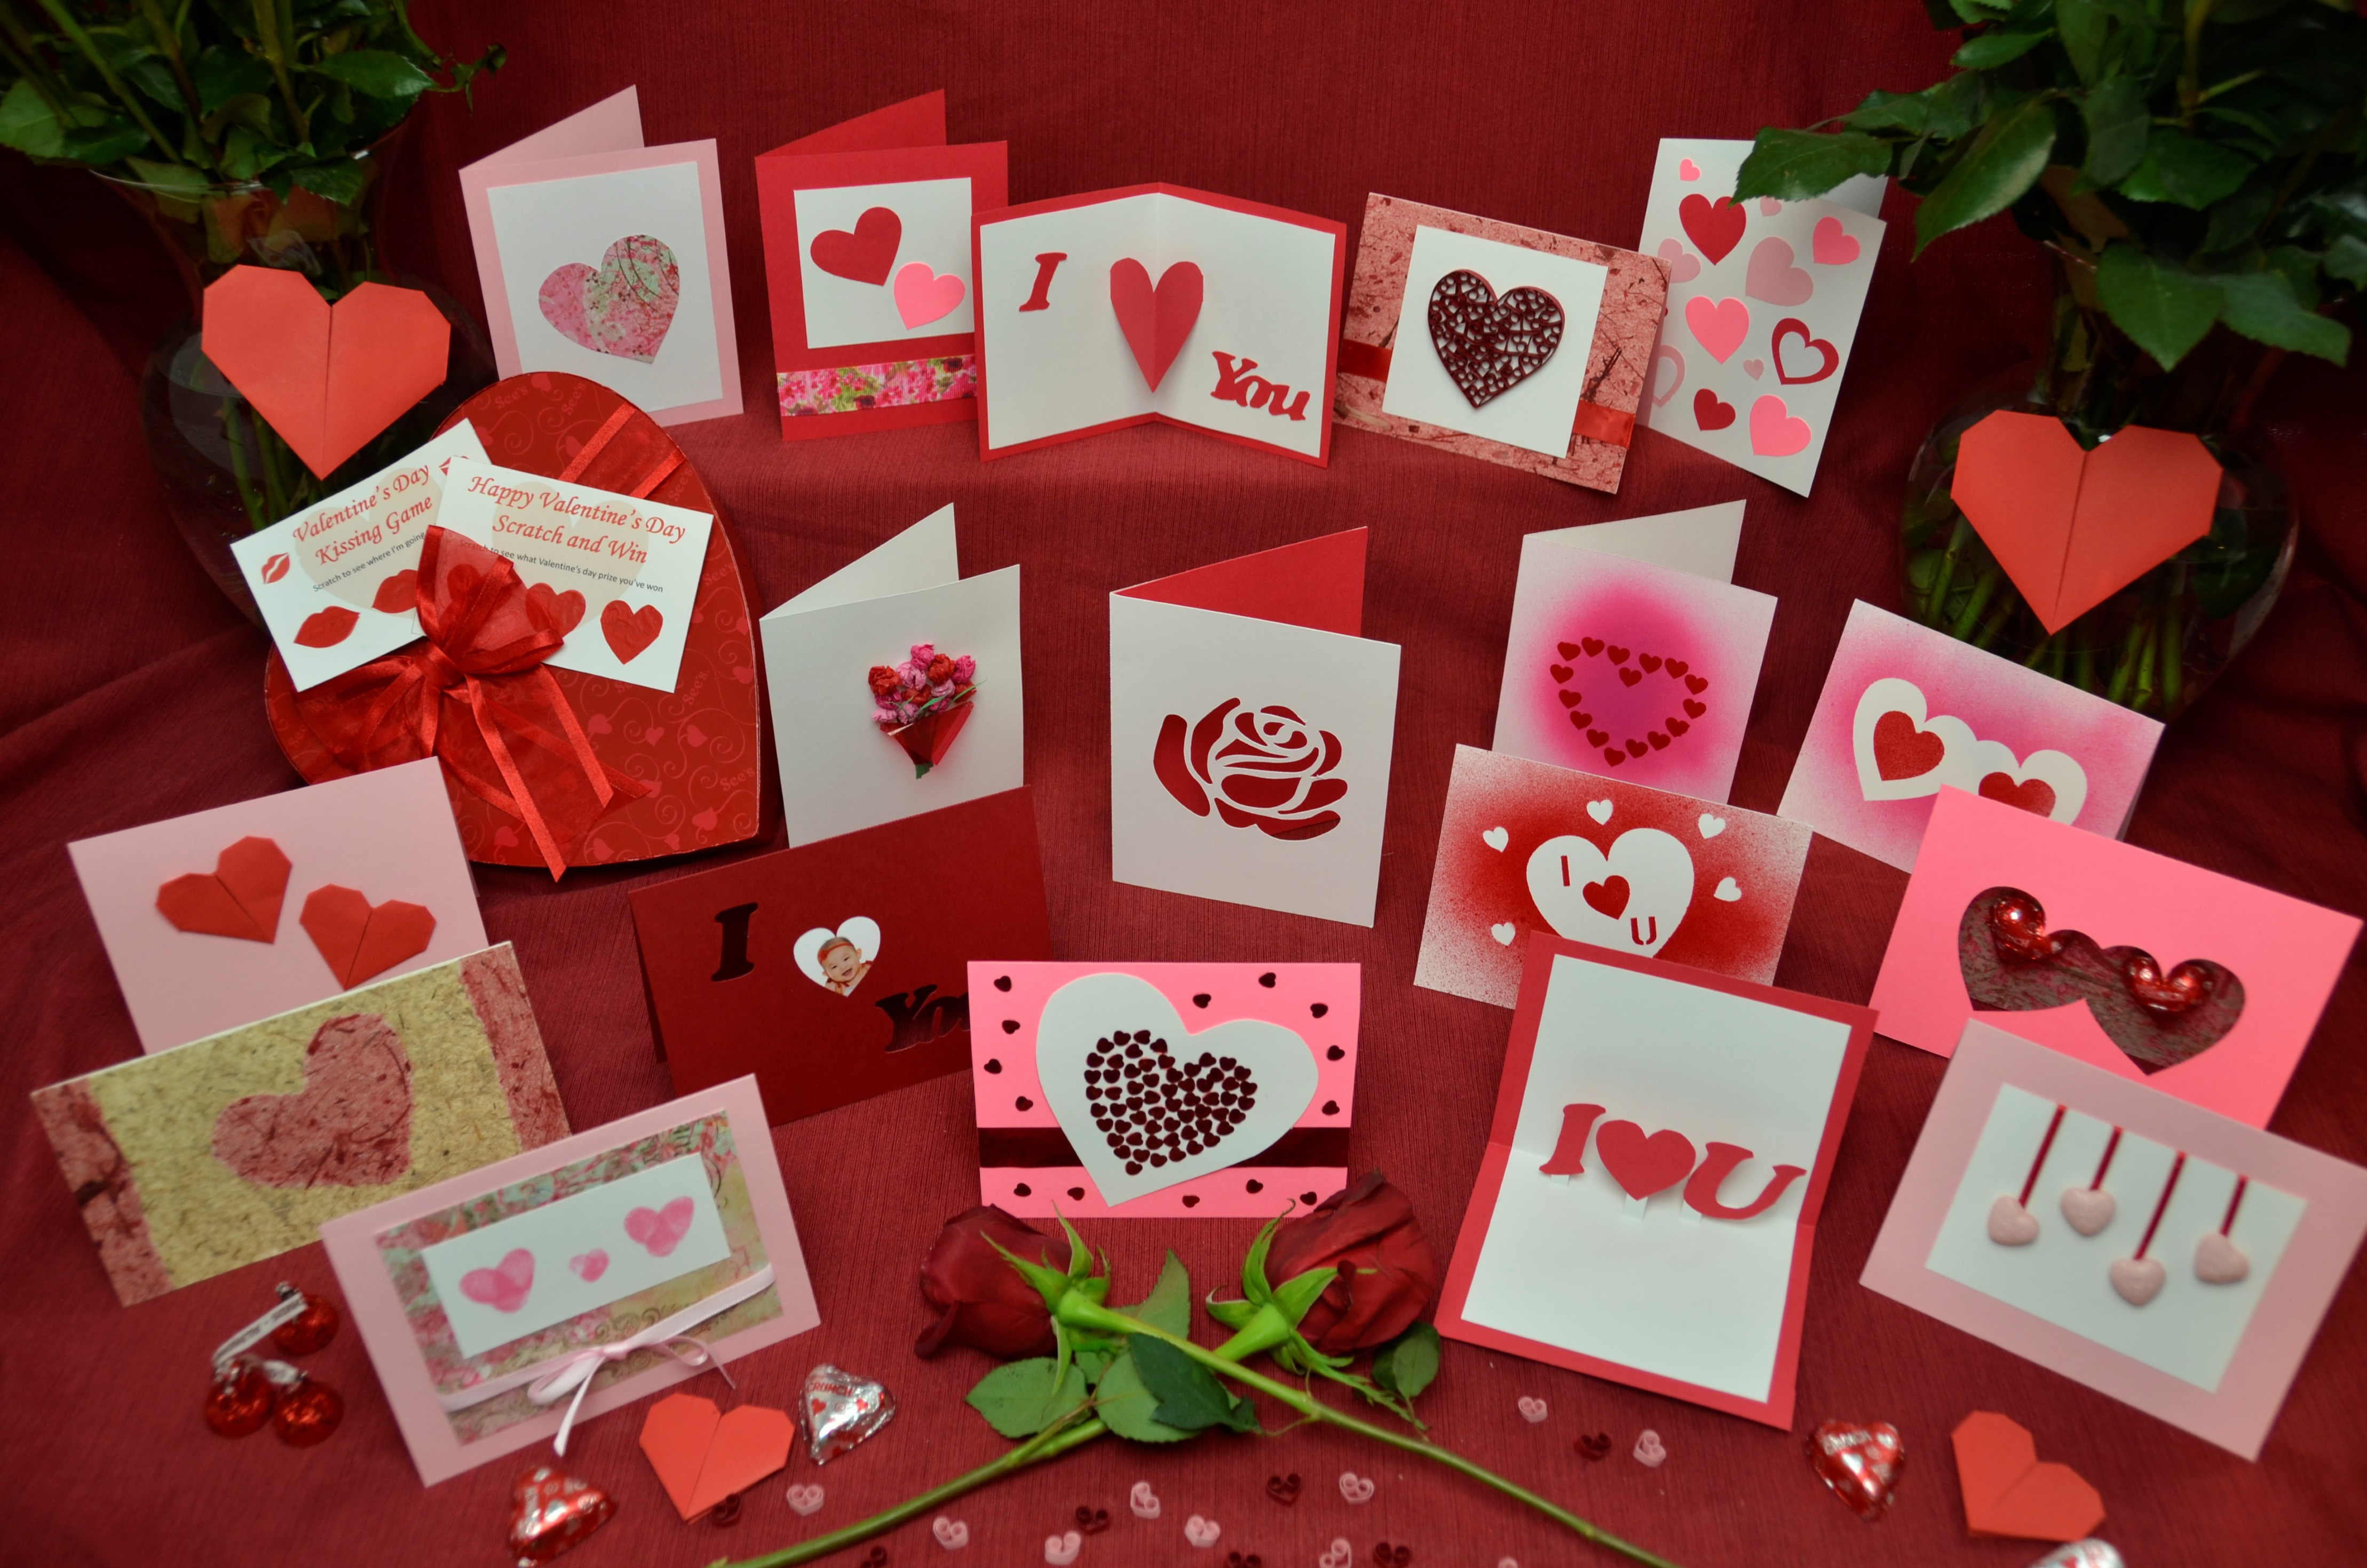 Valentines Gift Ideas For Him Homemade  Cute Romantic Valentines Day Ideas for Her 2017